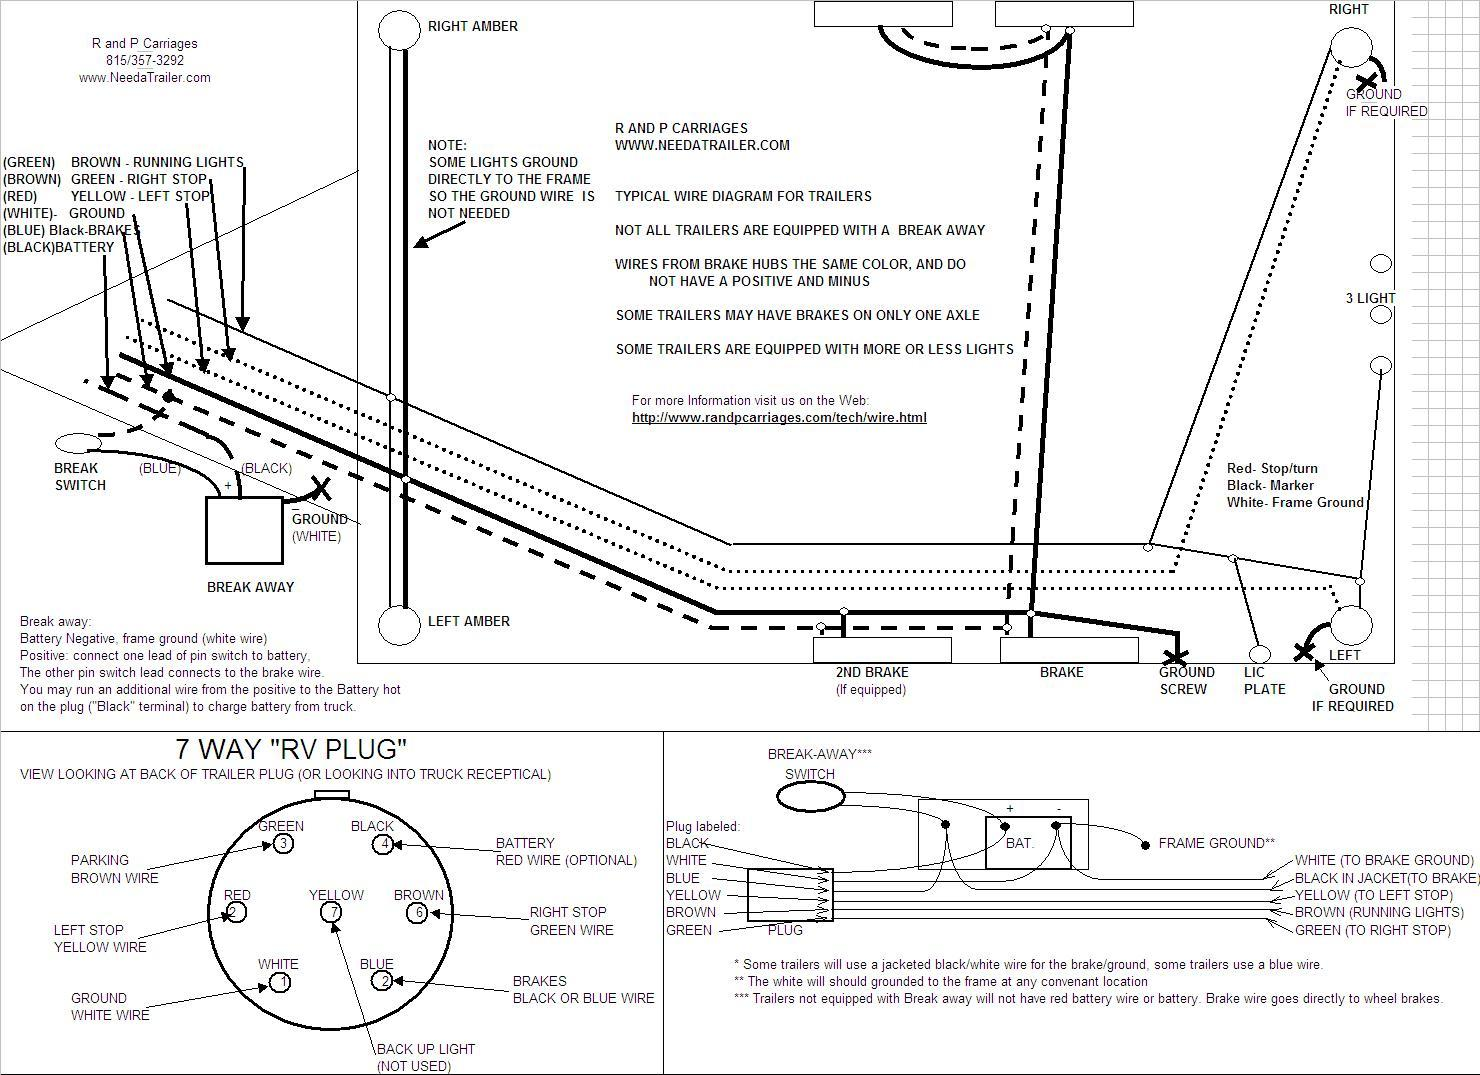 7 way wiring diagram jayco trailer wiring diagram rv battery wiring diagram \u2022 free  at virtualis.co